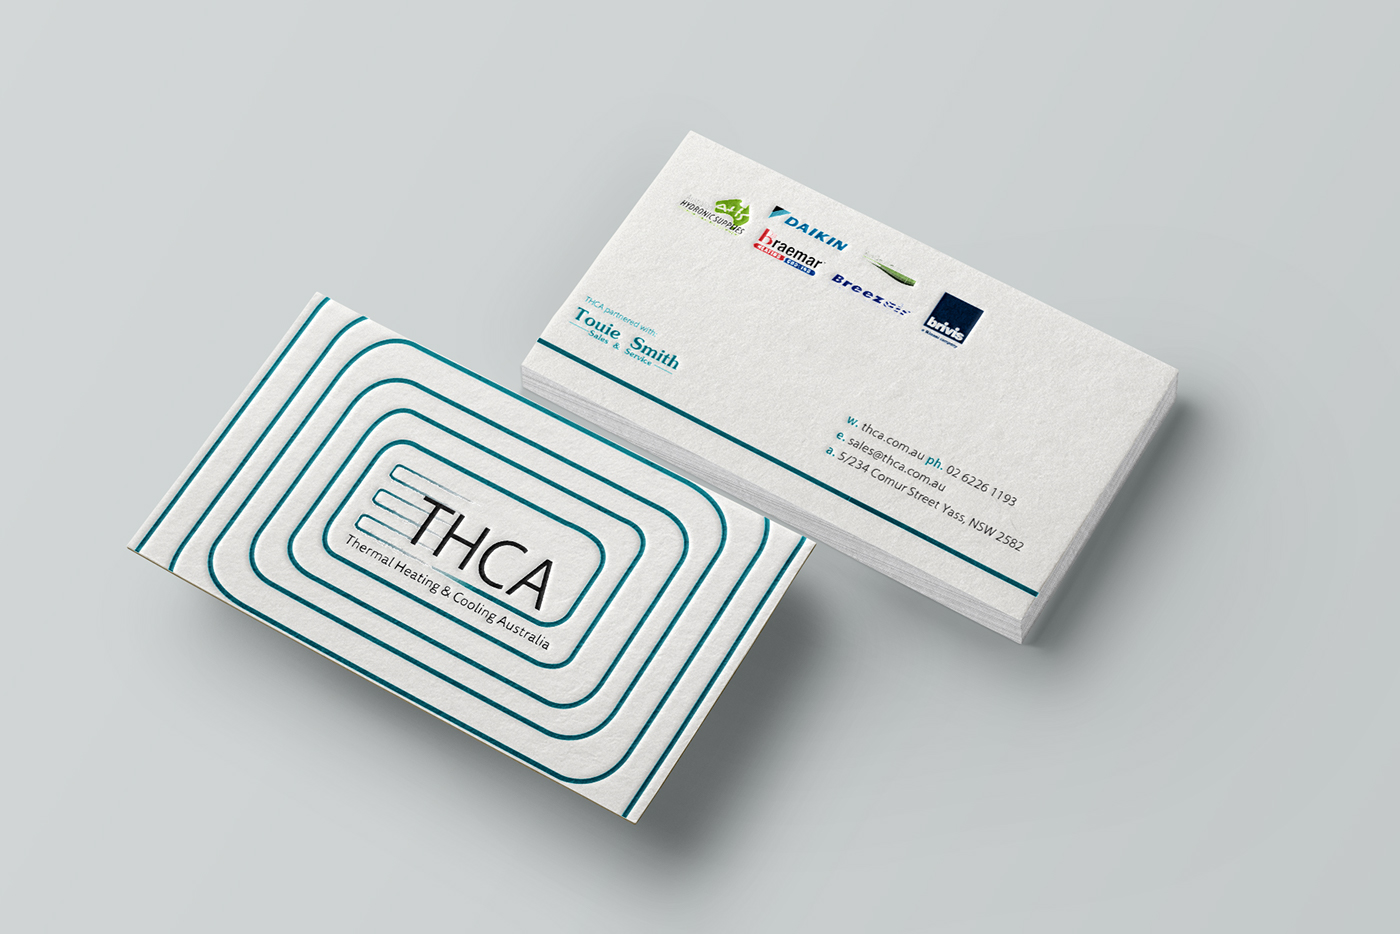 Thca thermal heating and cooling australia on behance reheart Images